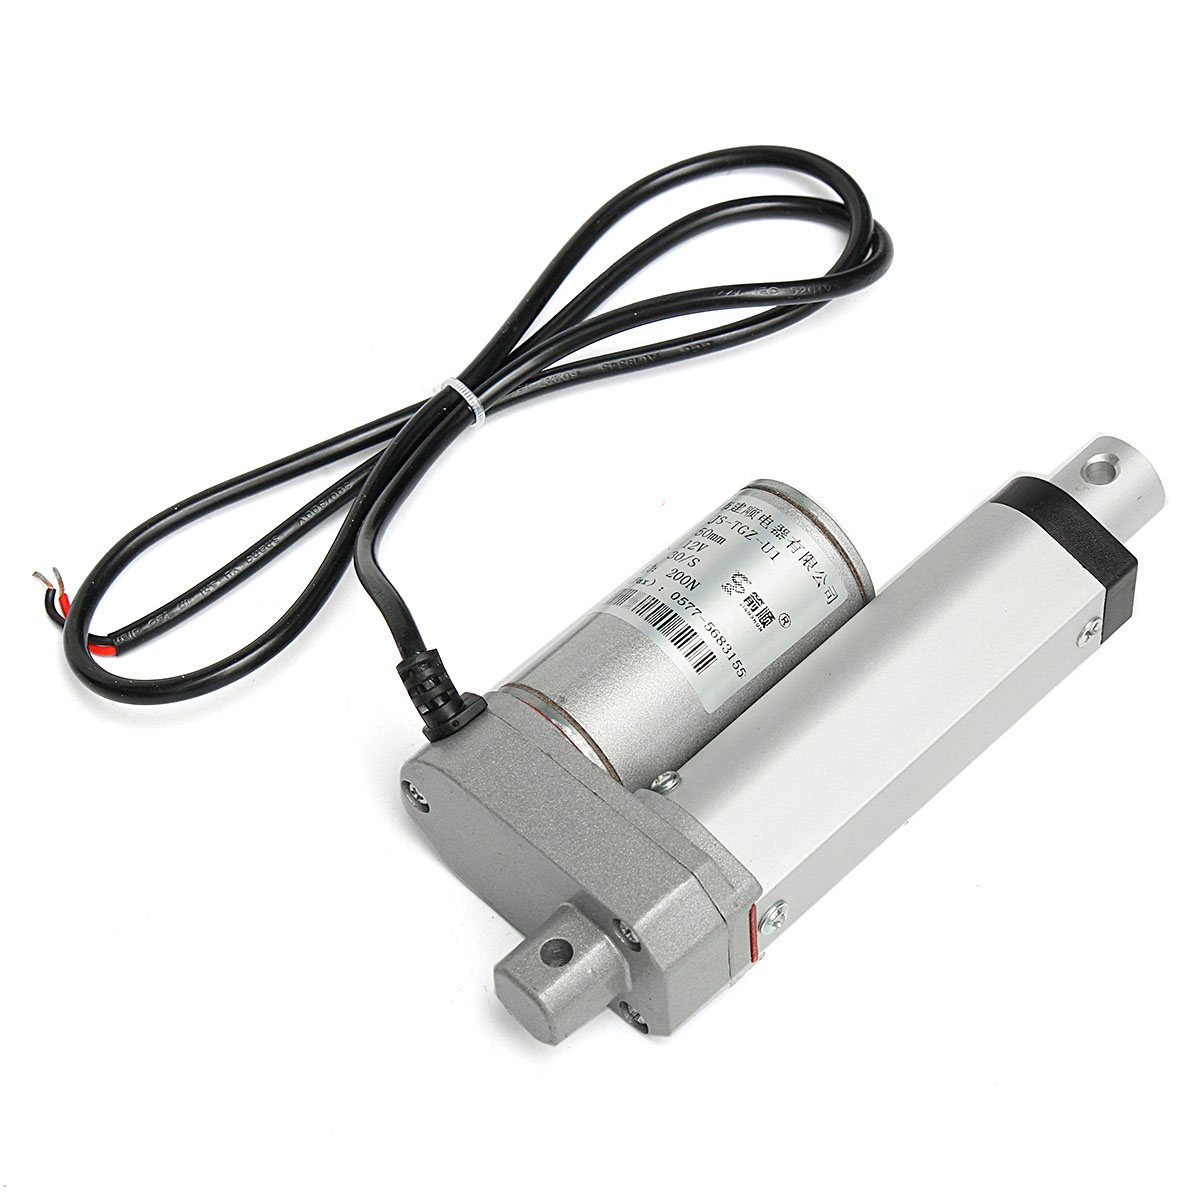 hight resolution of saiclehome 200n auto car dc 12v 44lbs heavy duty linear actuator lift electric motor 30mm s walmart com